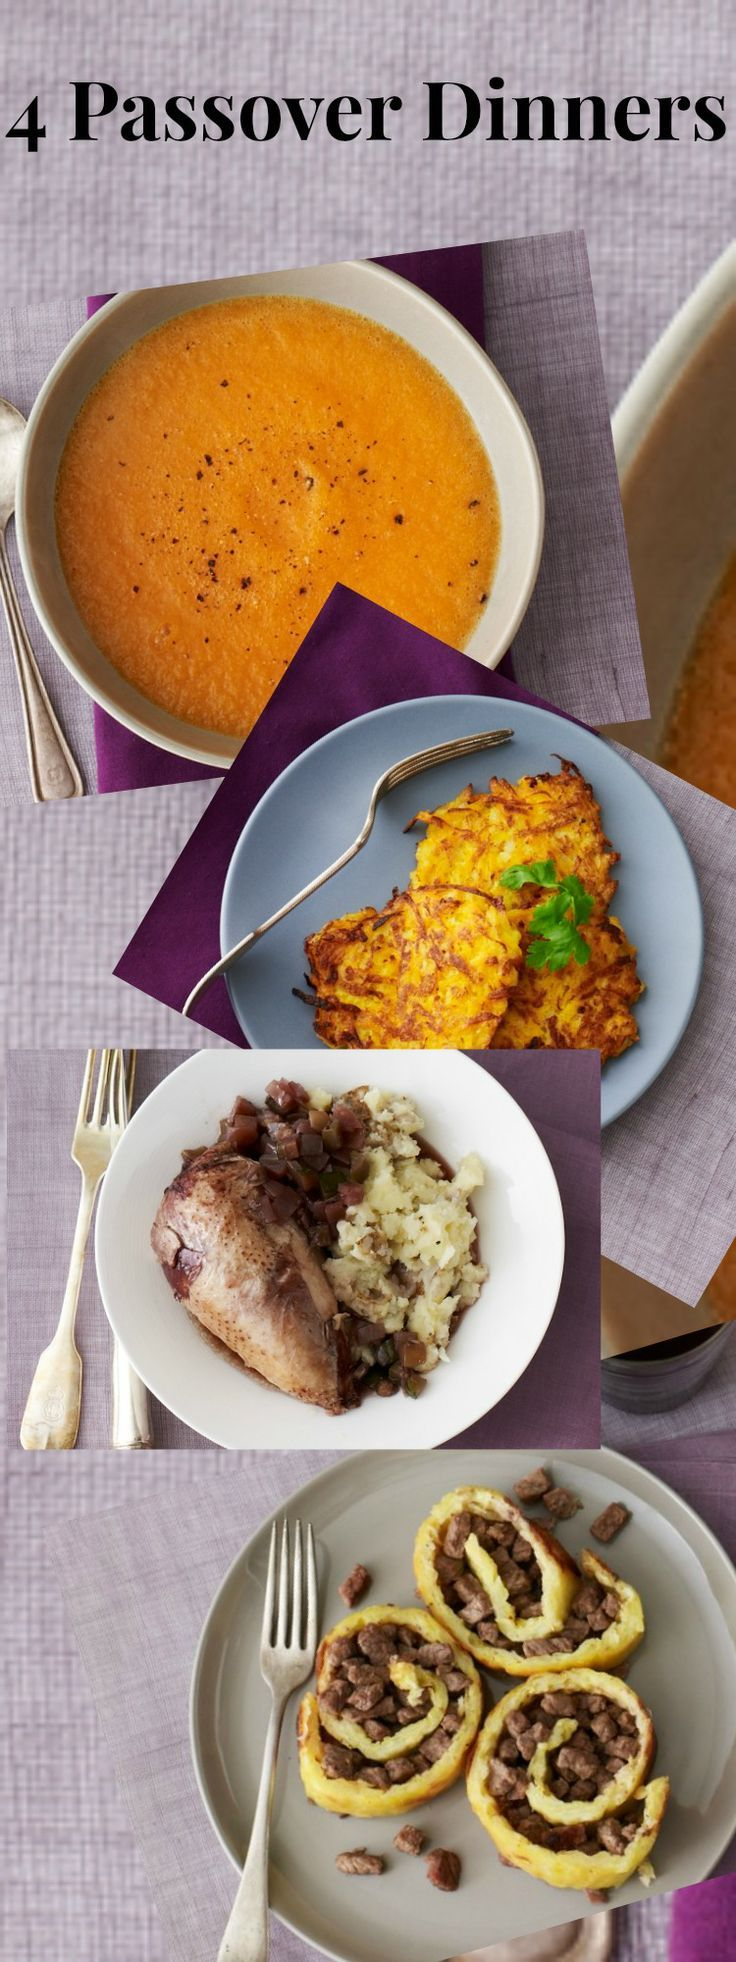 Passover Dinner Tonight Recipes perfect for now and during.